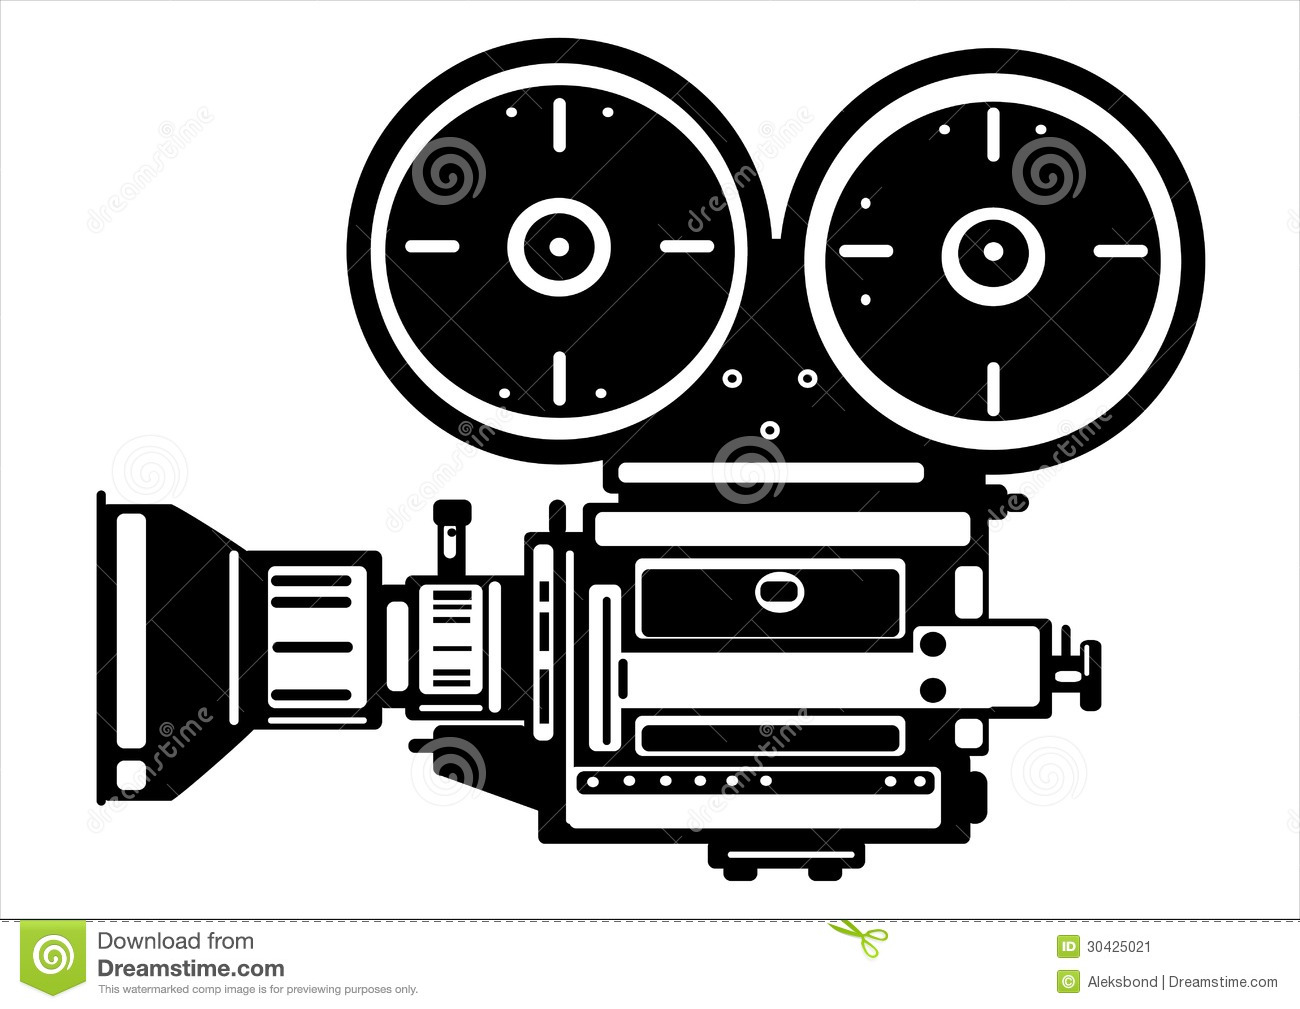 Tisch School Of The Arts Board Of Directors Vector Vintage Film Camera Isolated On White Stock Vector